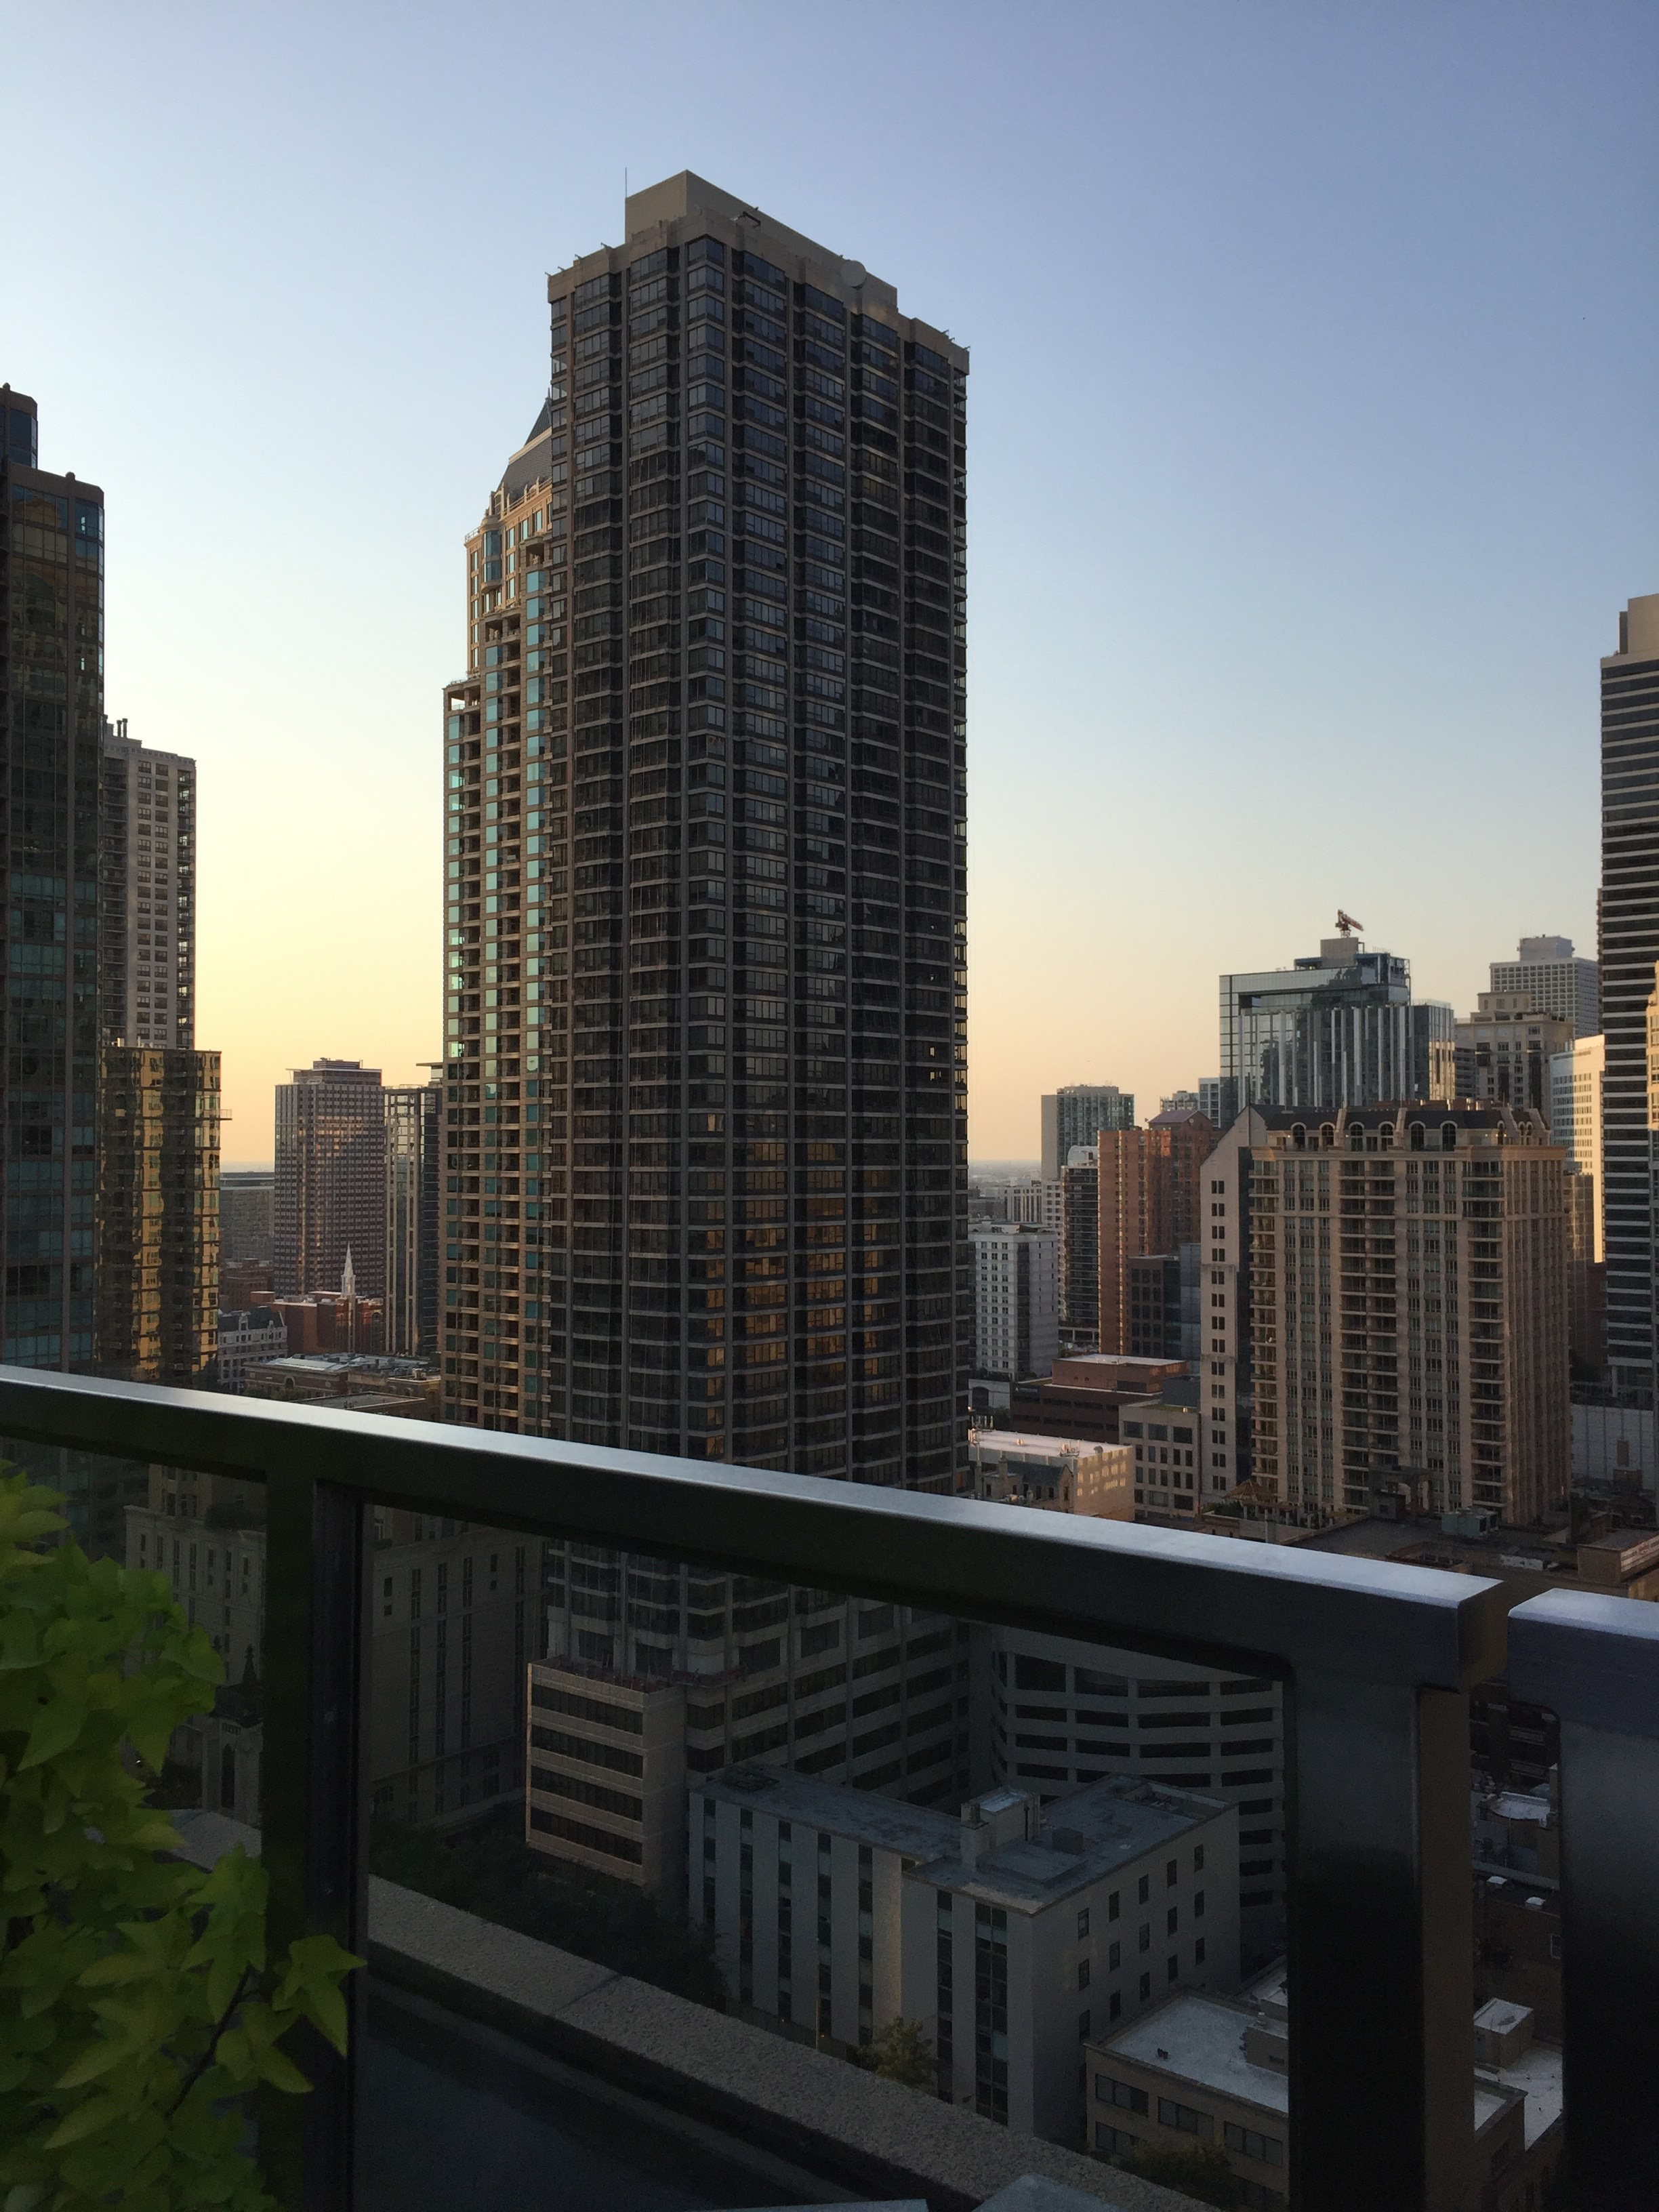 View from Rooftop Terrace amongst other Tall Buildings